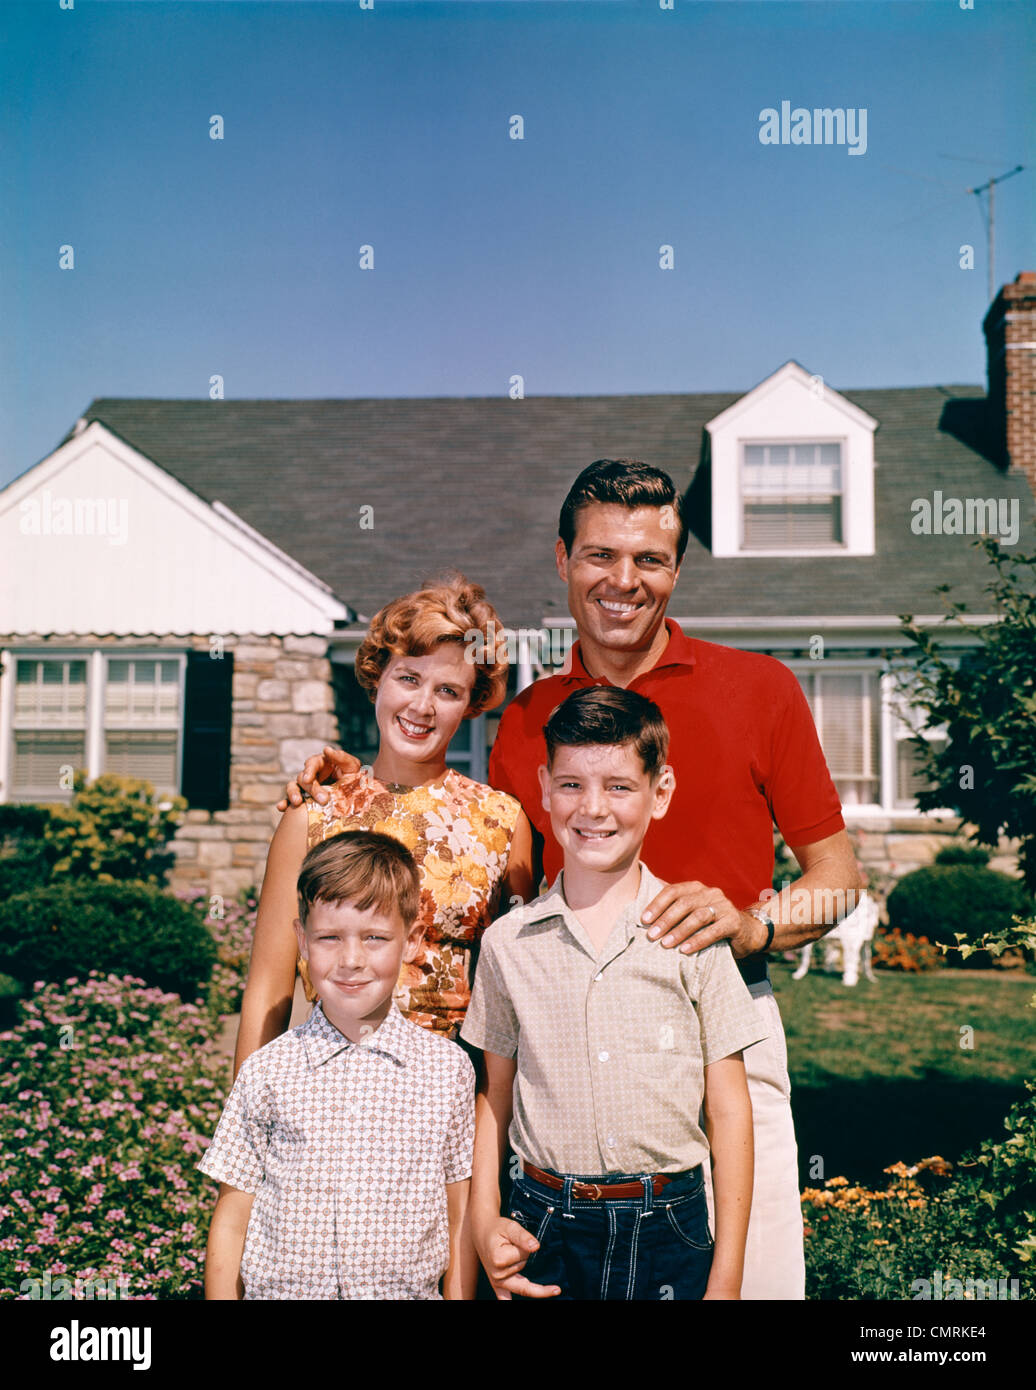 PORTRAIT SMILING FAMILY FATHER MOTHER TWO SONS STANDING TOGETHER IN FRONT OF SUBURBAN HOUSE OUTDOOR 1960s - Stock Image